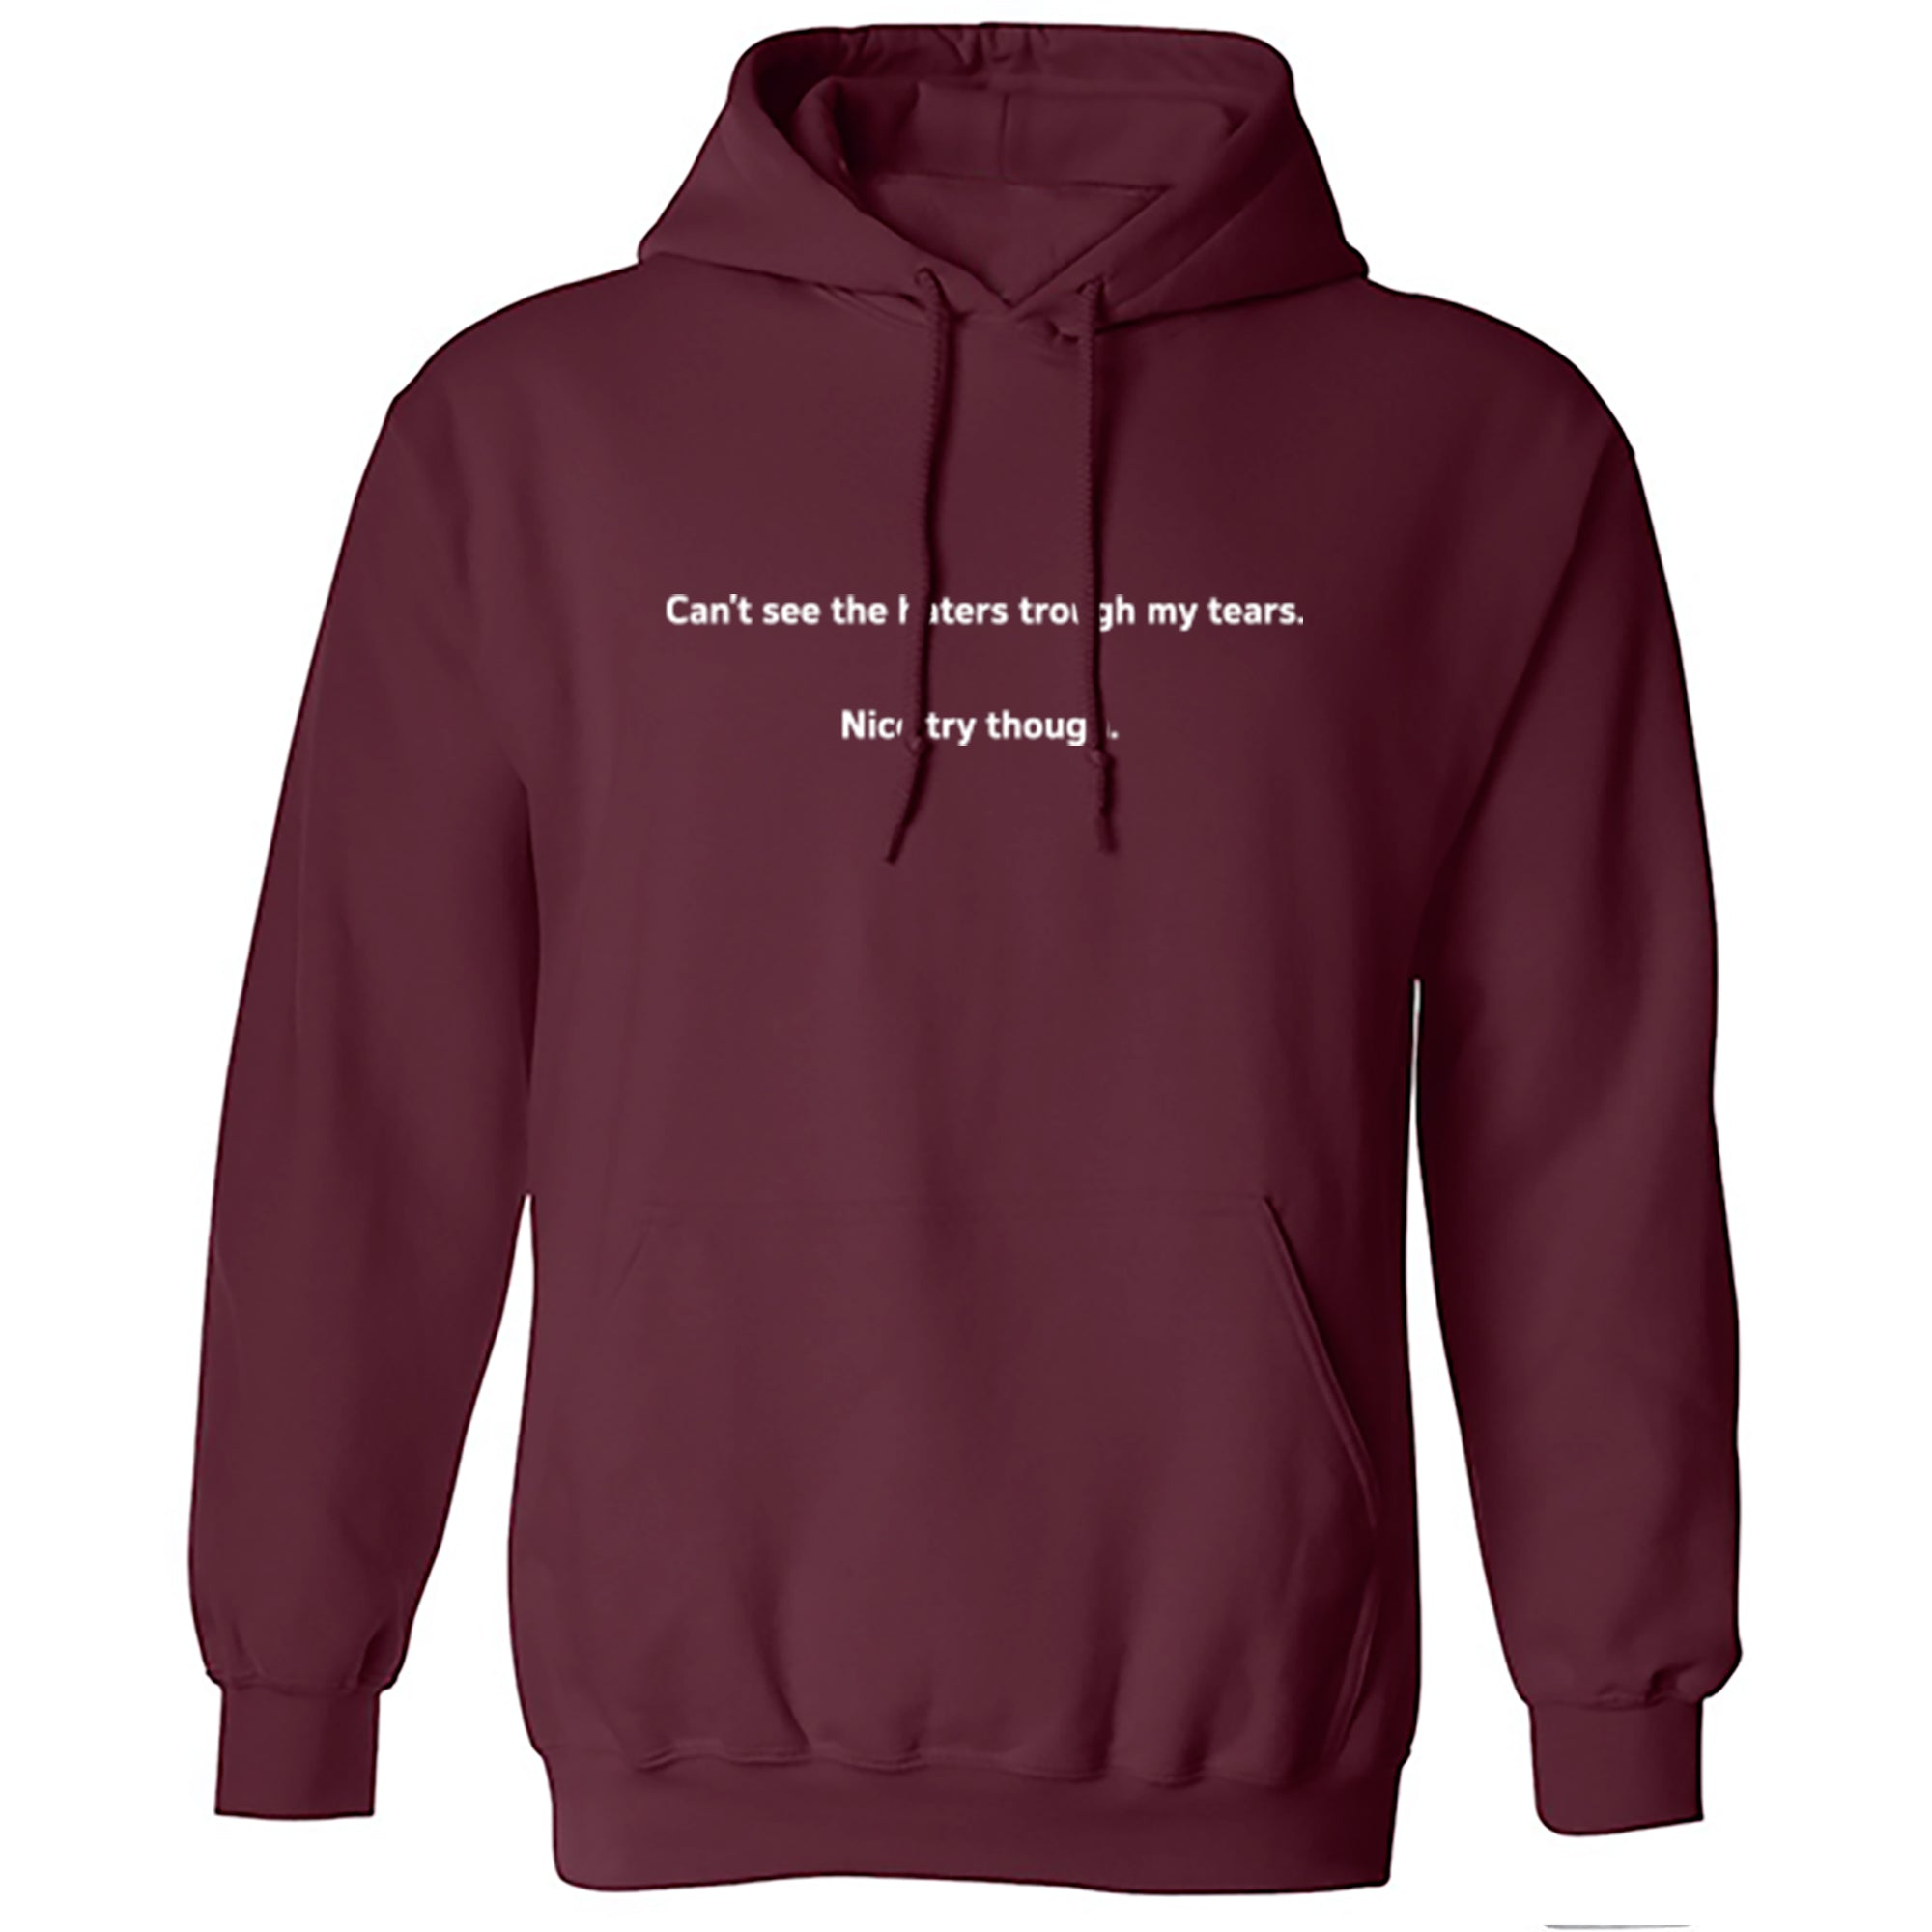 Can't See The Haters Through My Tears. Nice Try Though Unisex Hoodie S1116 - Illustrated Identity Ltd.